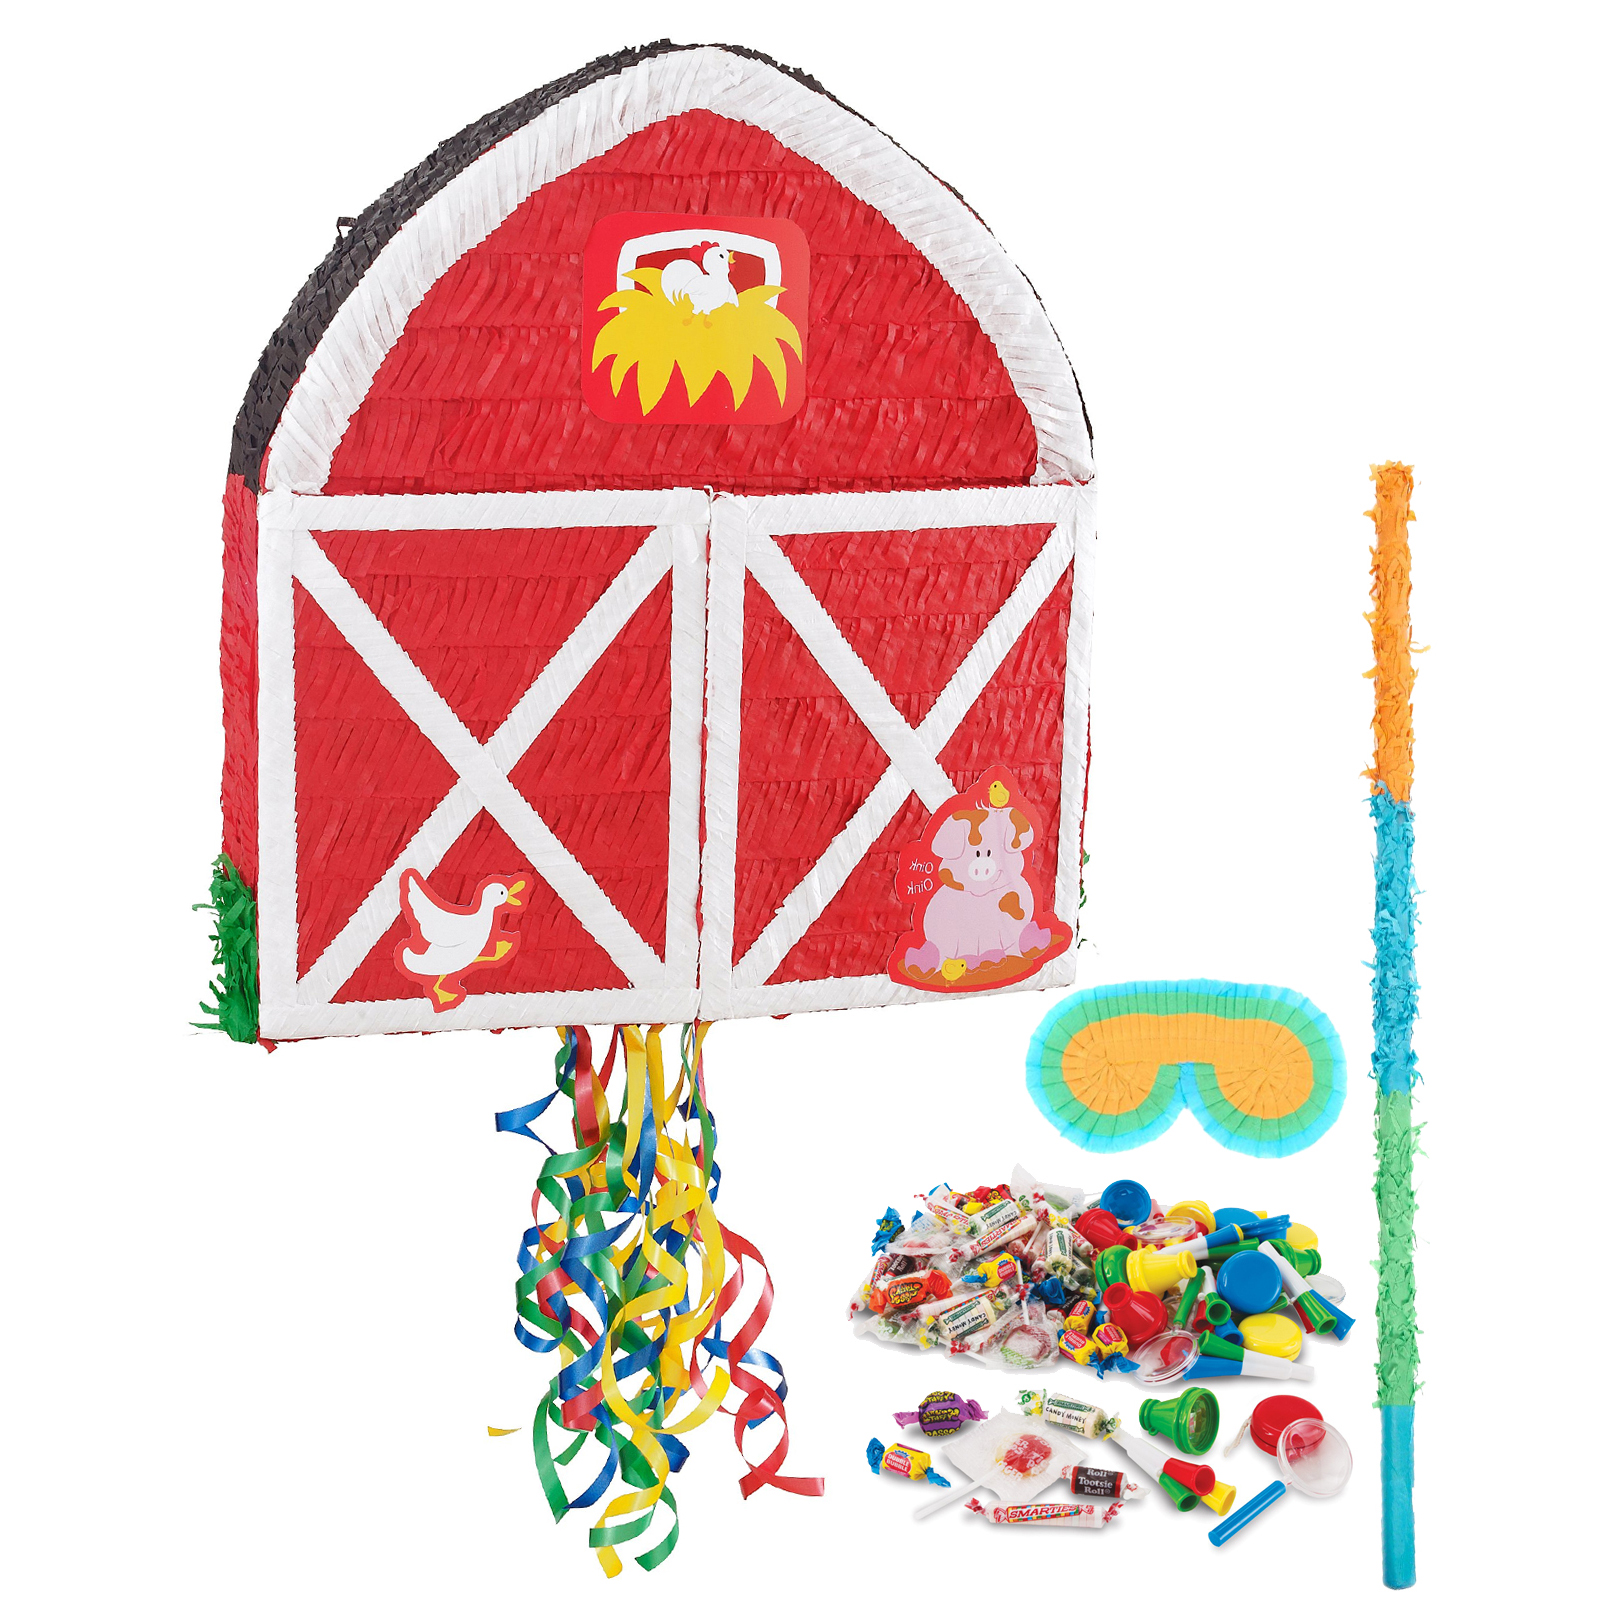 Farmhouse Pull String Economy Pinata Kit BBPK211BG